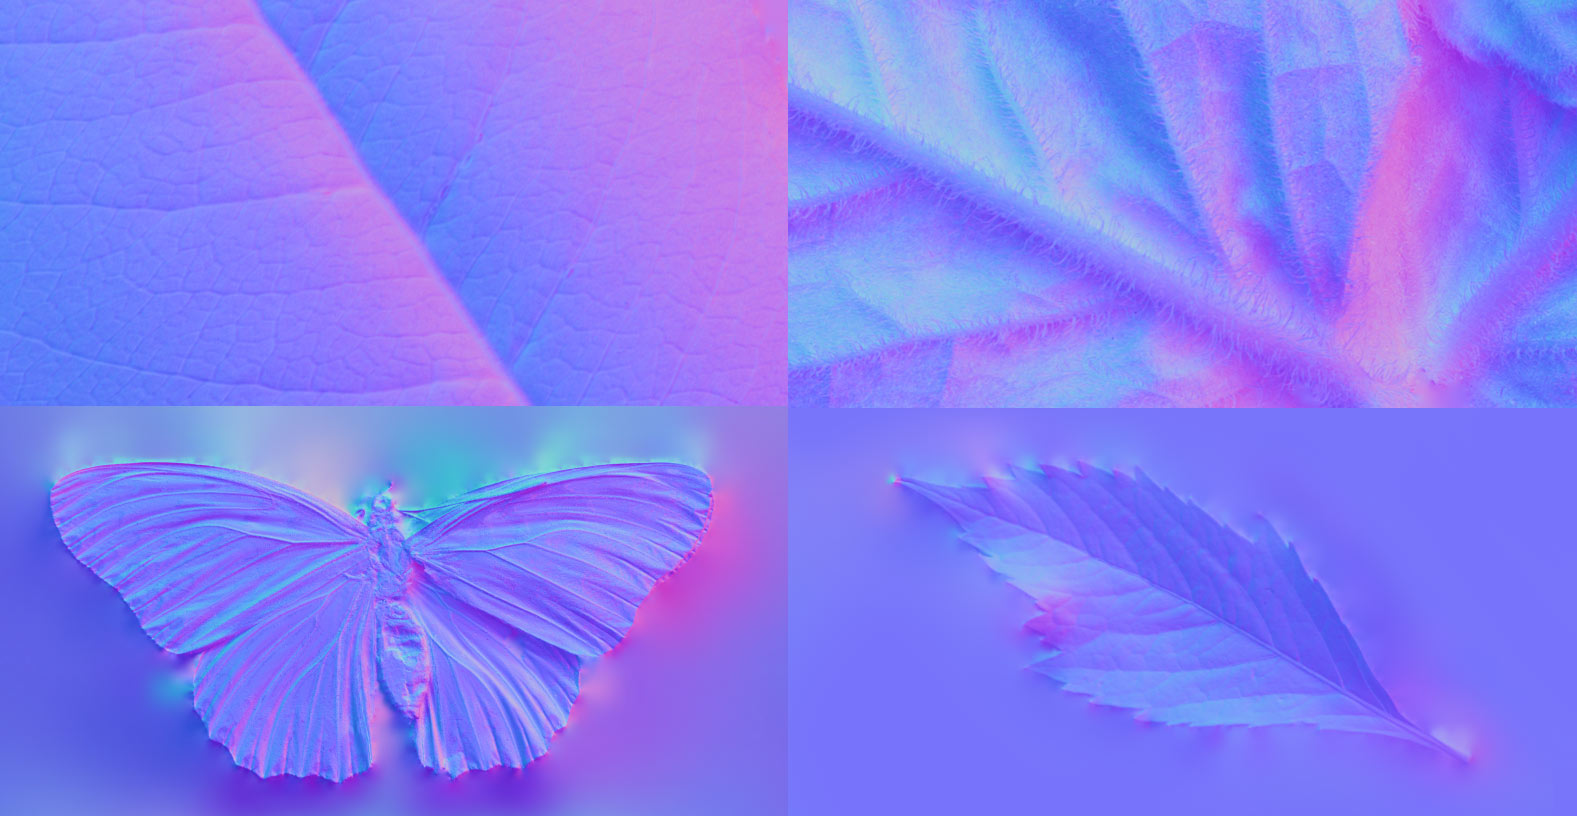 Leaves, flowers, bark and butterflies. Because who doesn't love butterflies?